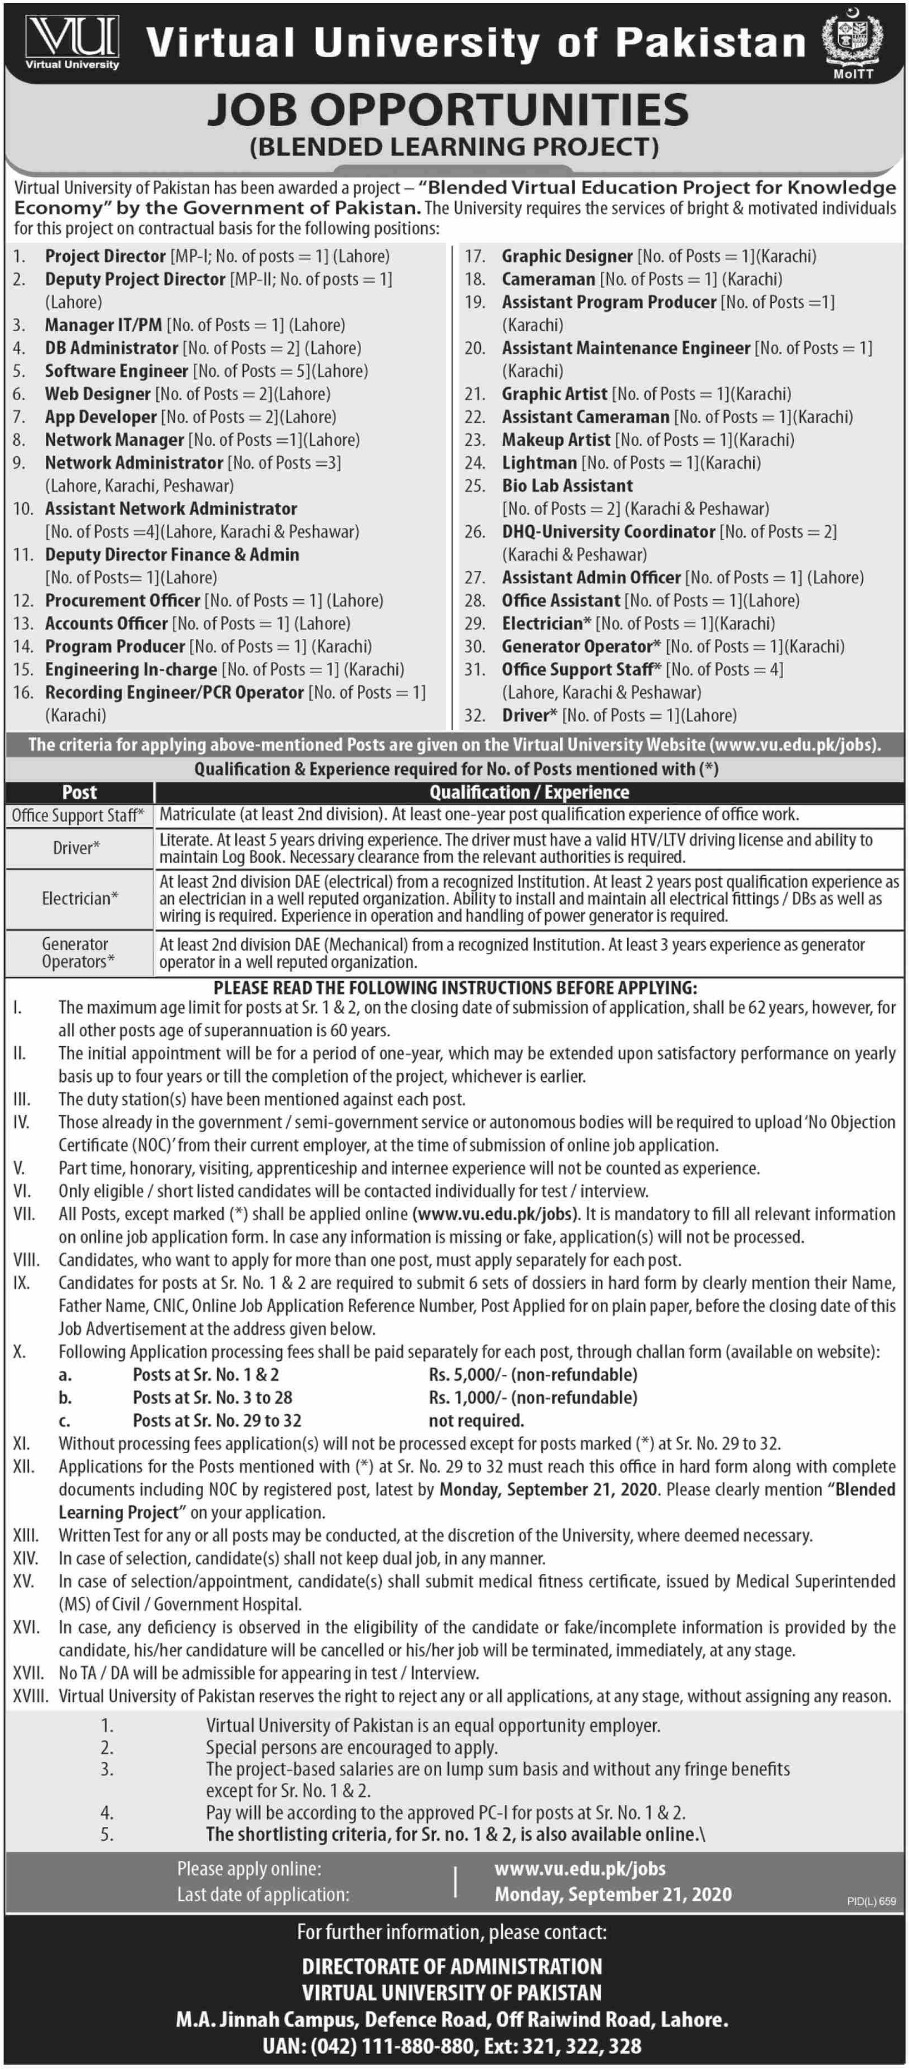 Virtual University of Pakistan VU Jobs September 2020